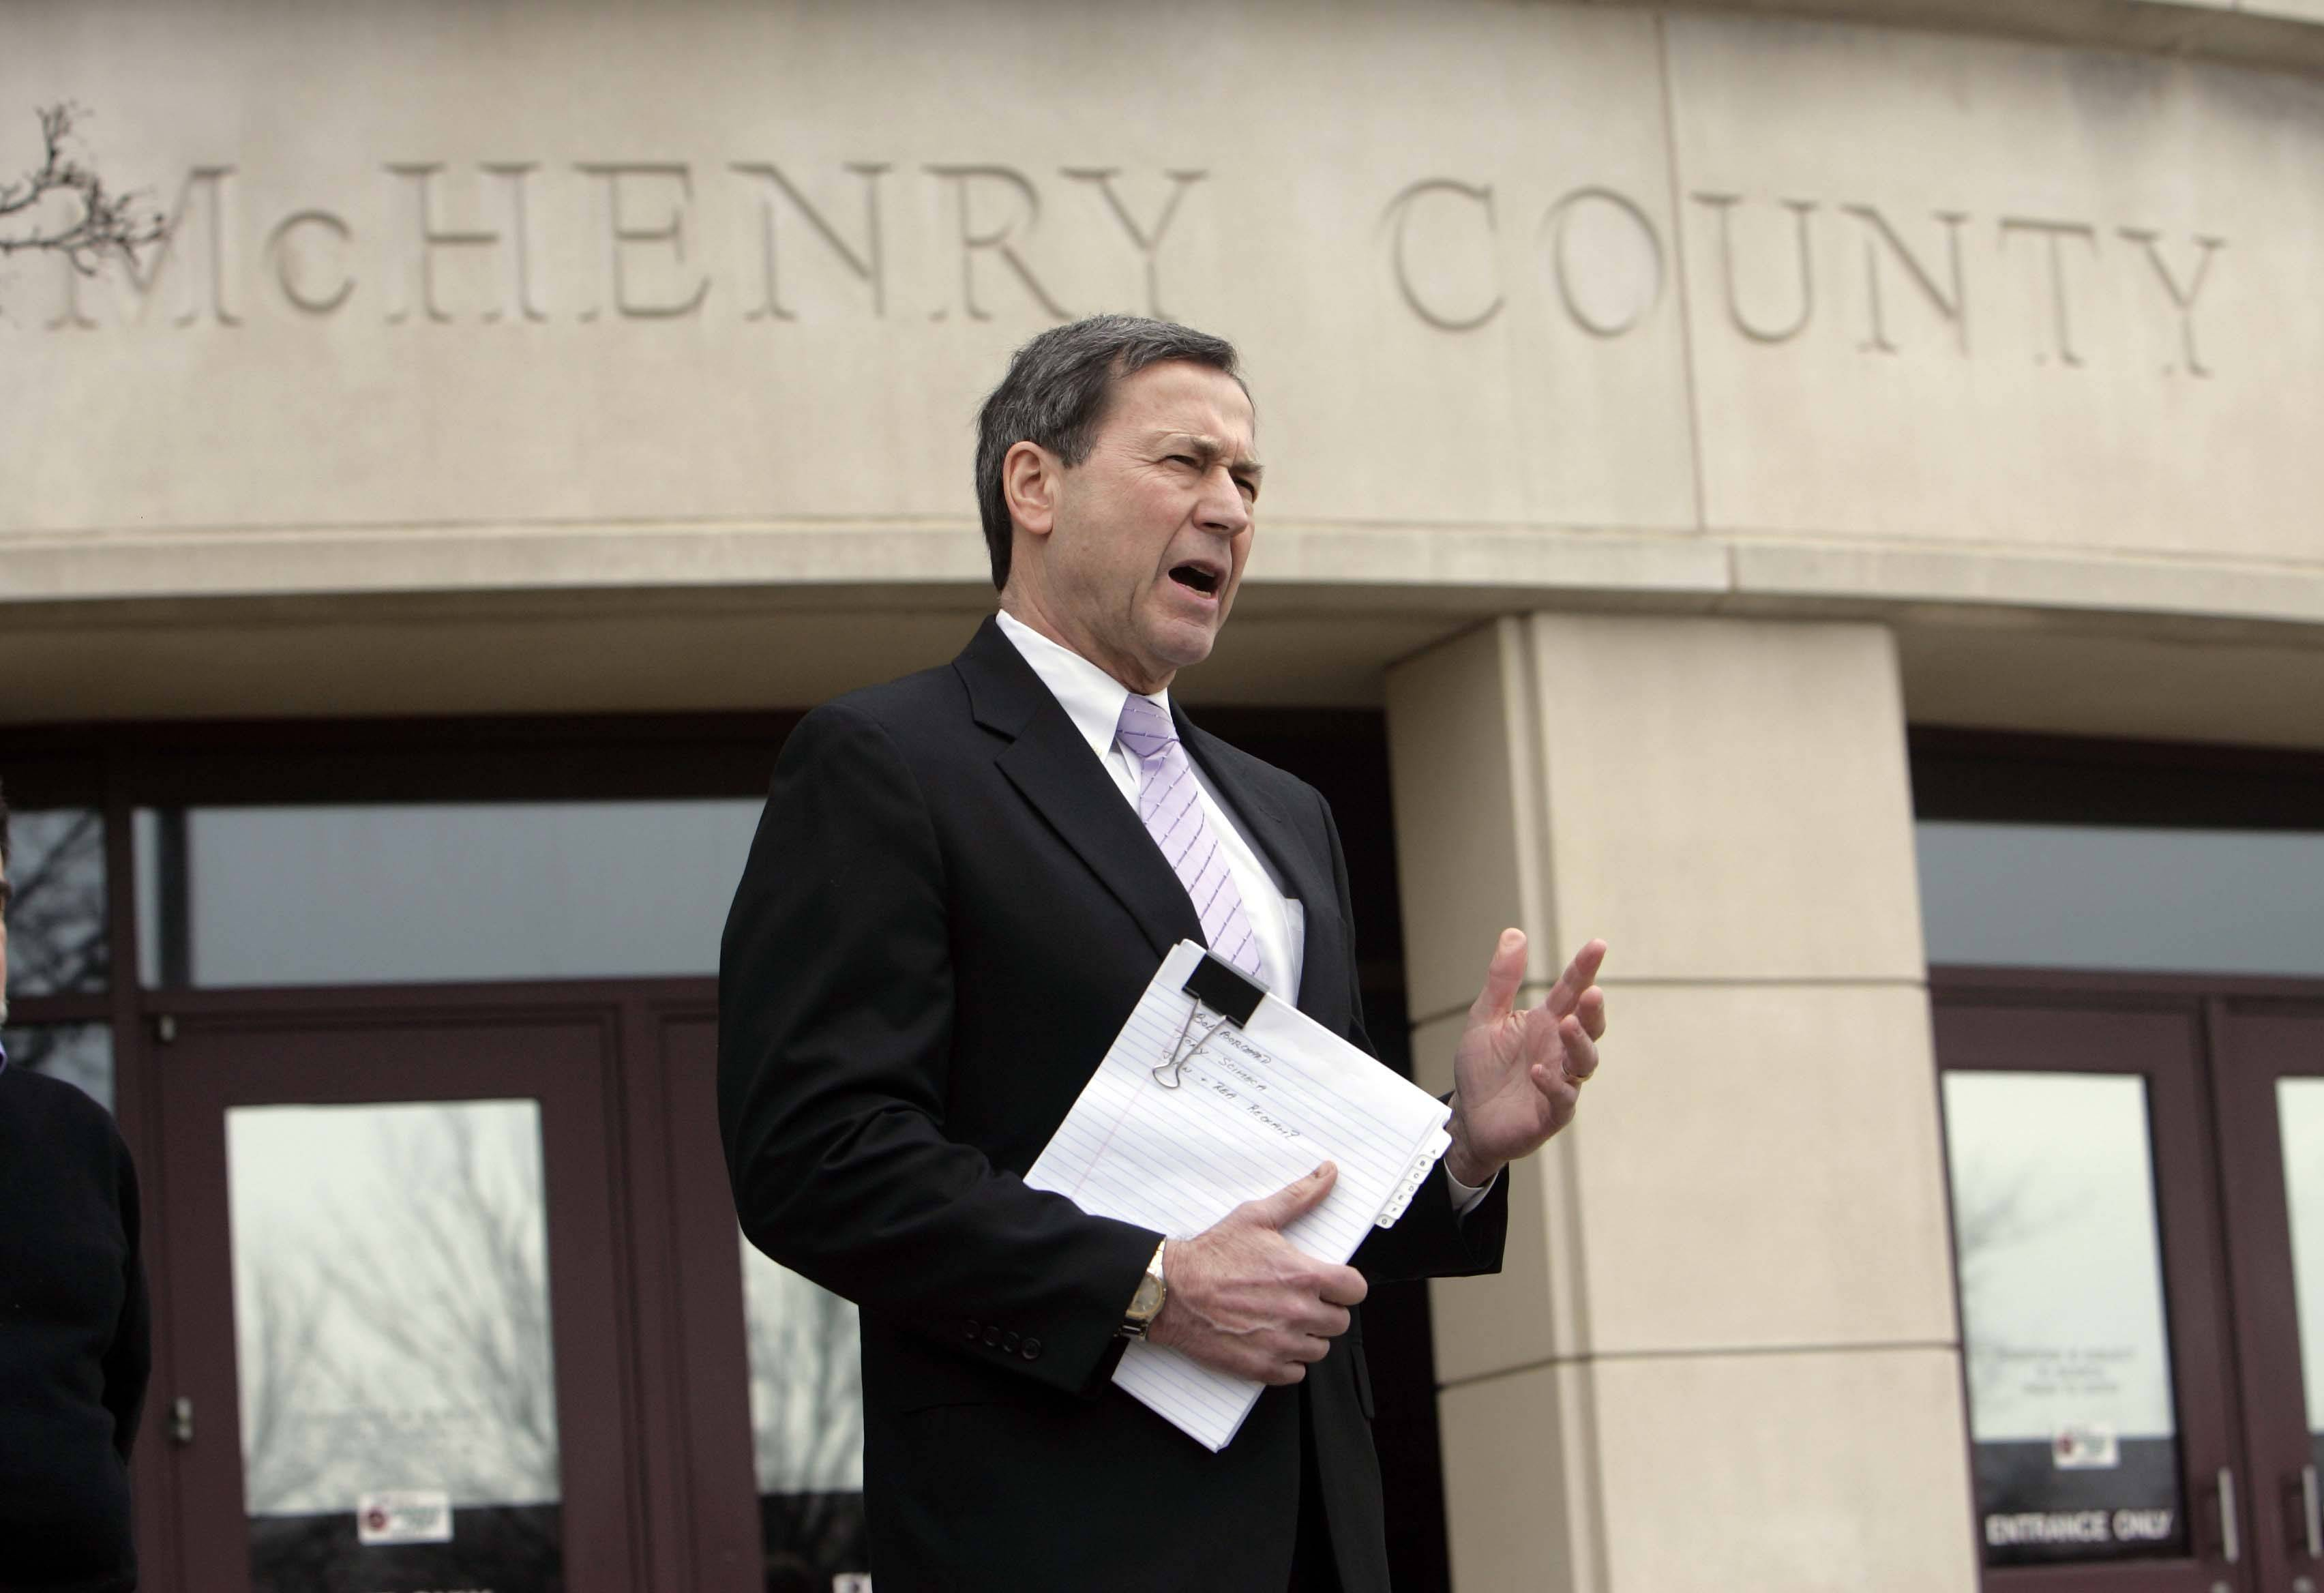 Terry Ekl, the defense attorney for McHenry County State's Attorney Louis Bianchi, talks about a lawsuit filed Thursday that asks judge to dismiss the special prosecutors who investigated Bianchi on corruption charges for incompetence and over billing.